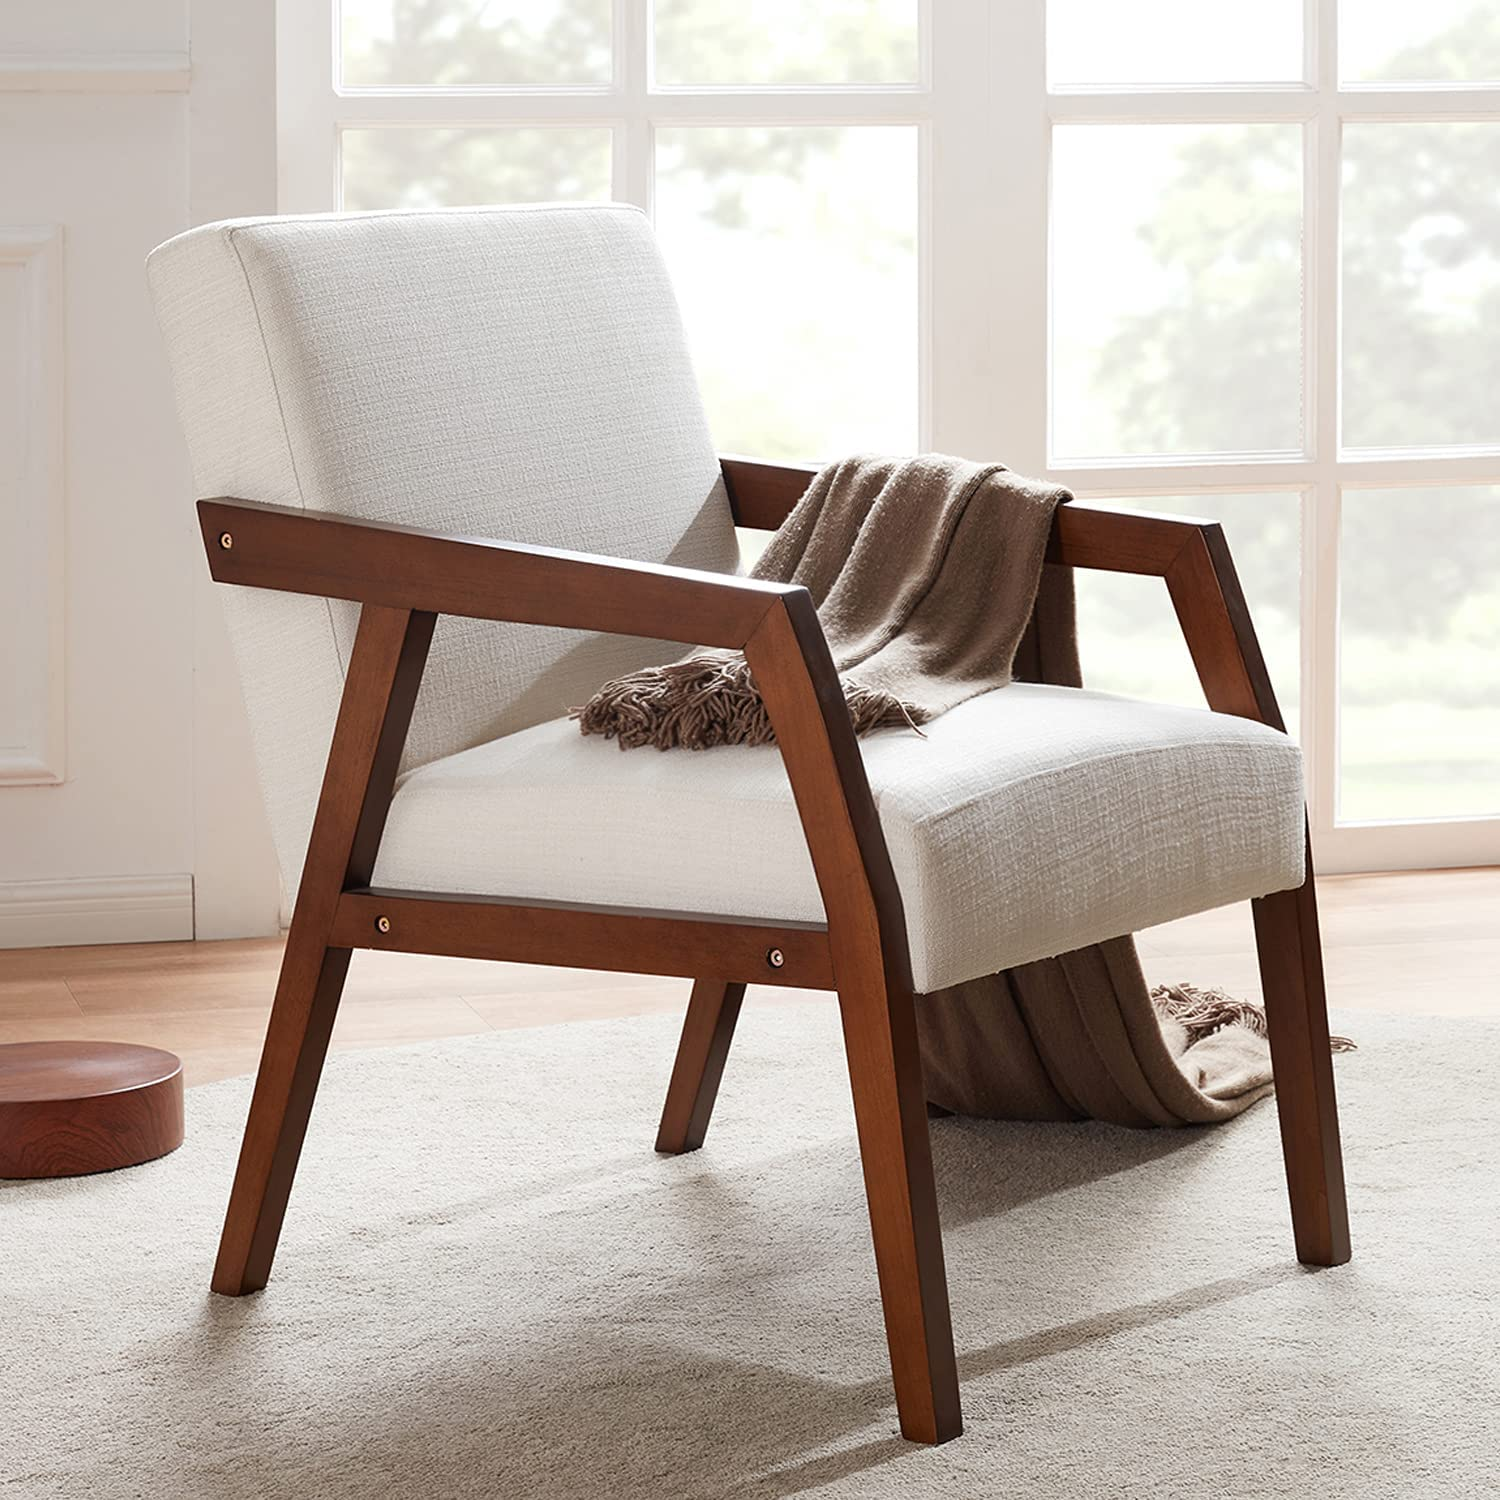 Huimo Arm Chair Accent, Lounge Chairs For Living Room